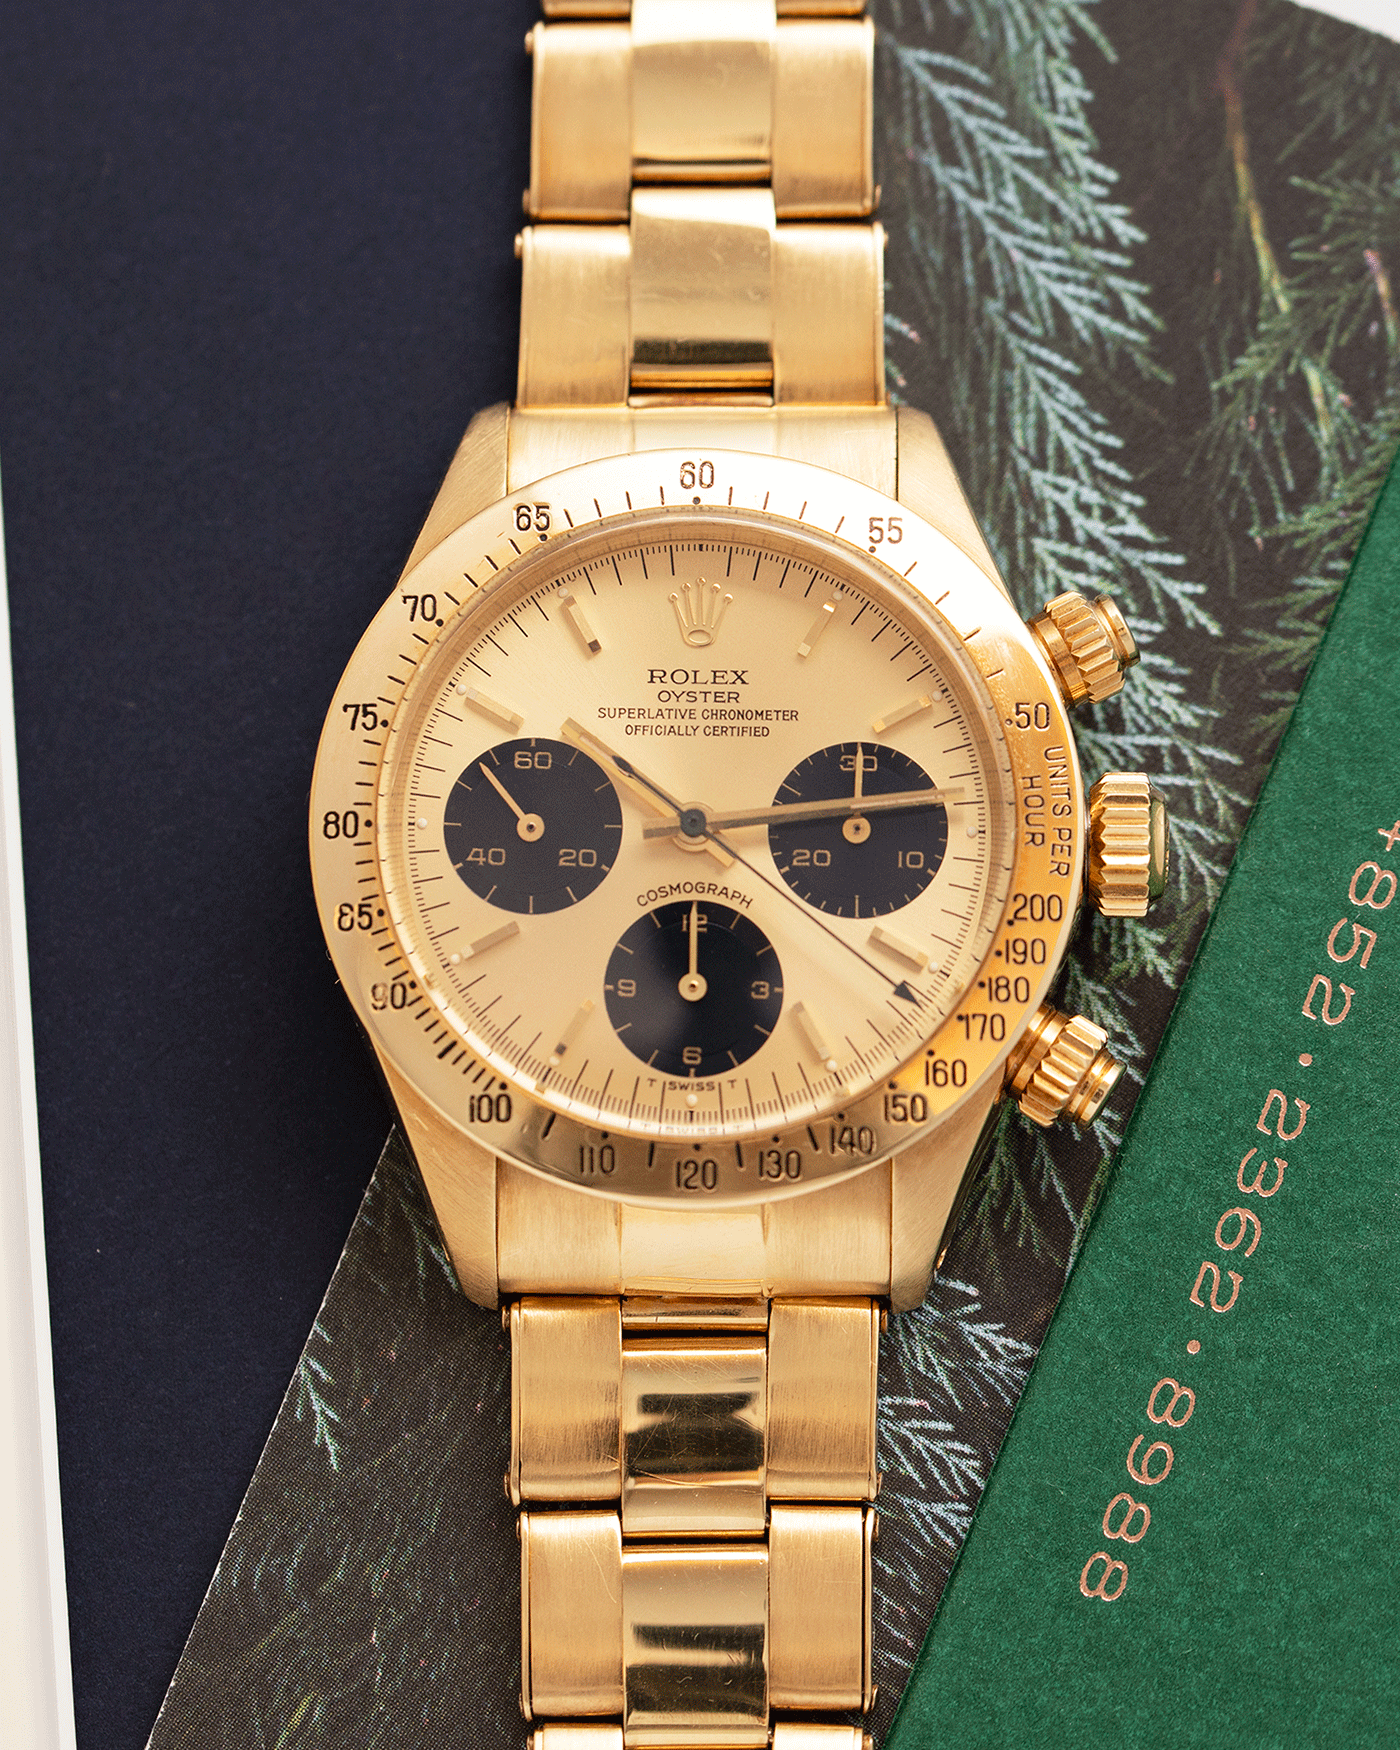 Rolex Cosmograph Daytona 6265 Vintage Yellow Gold Chronograph Watch | S.Song Vintage Timepieces